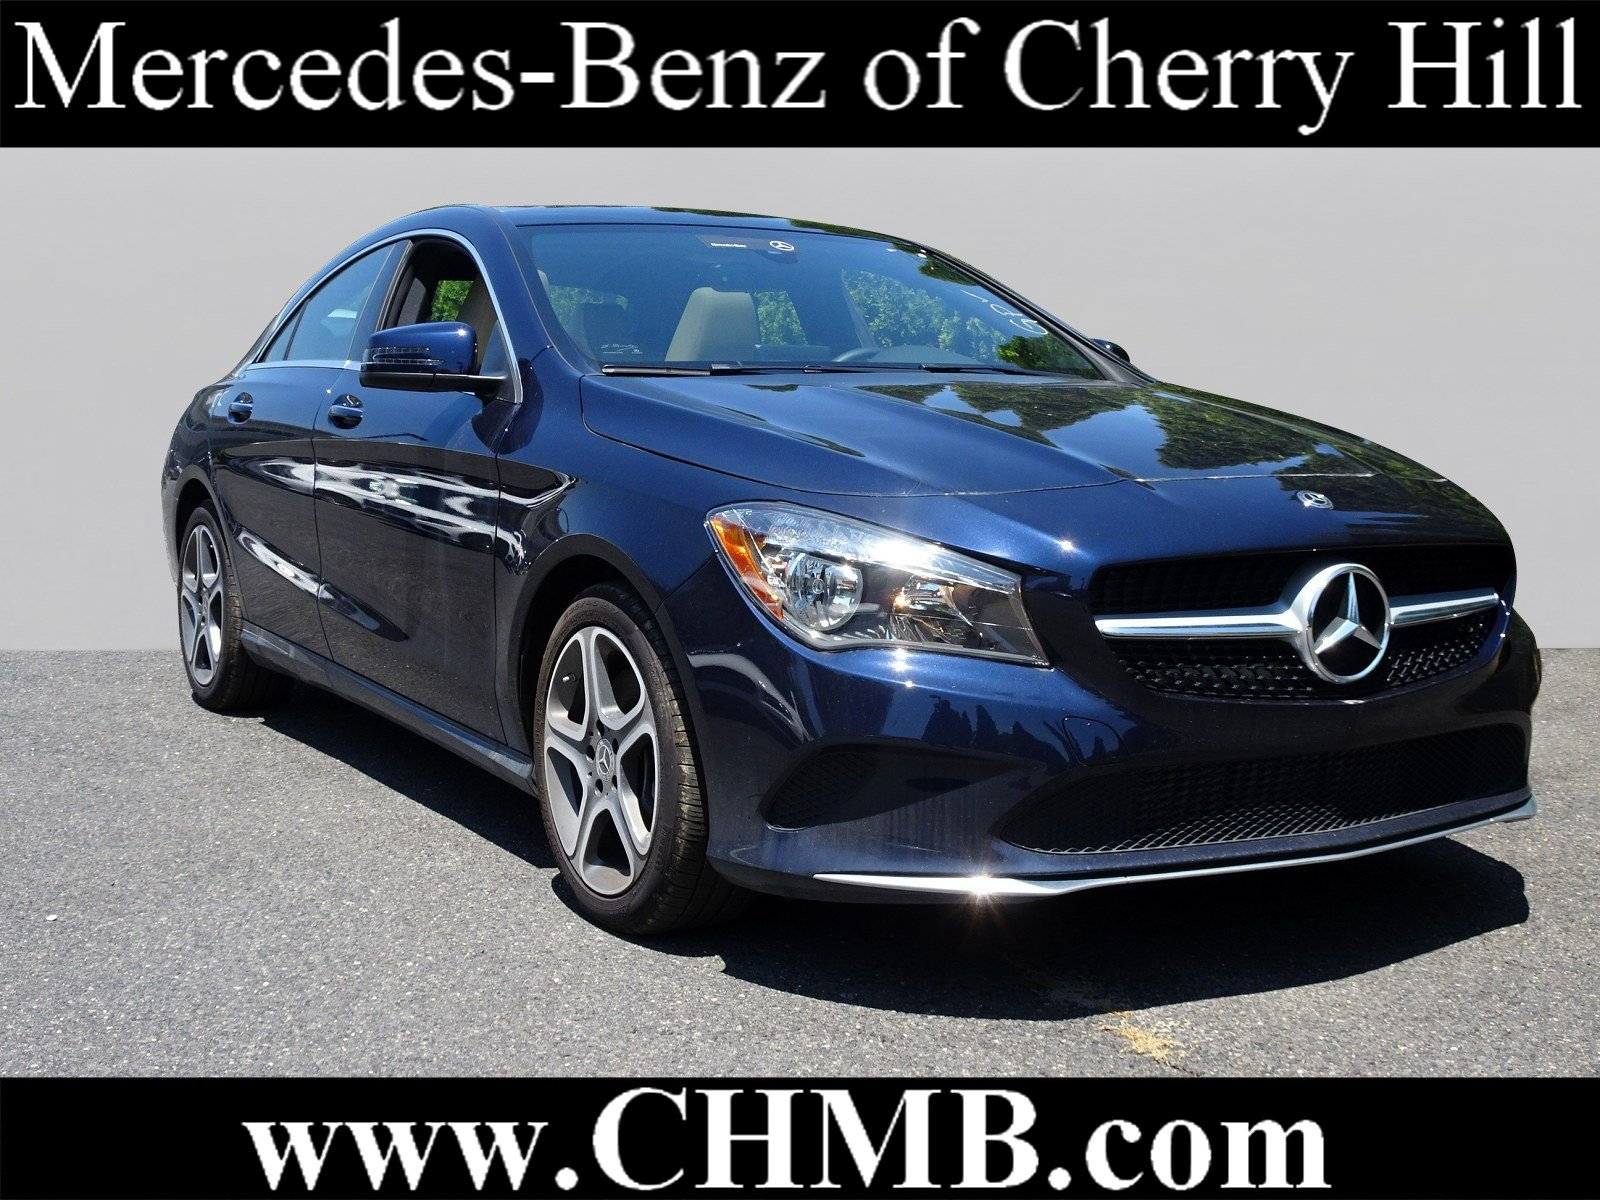 Pre Owned 2018 Mercedes Benz CLA CLA 250 Coupe in Cherry Hill